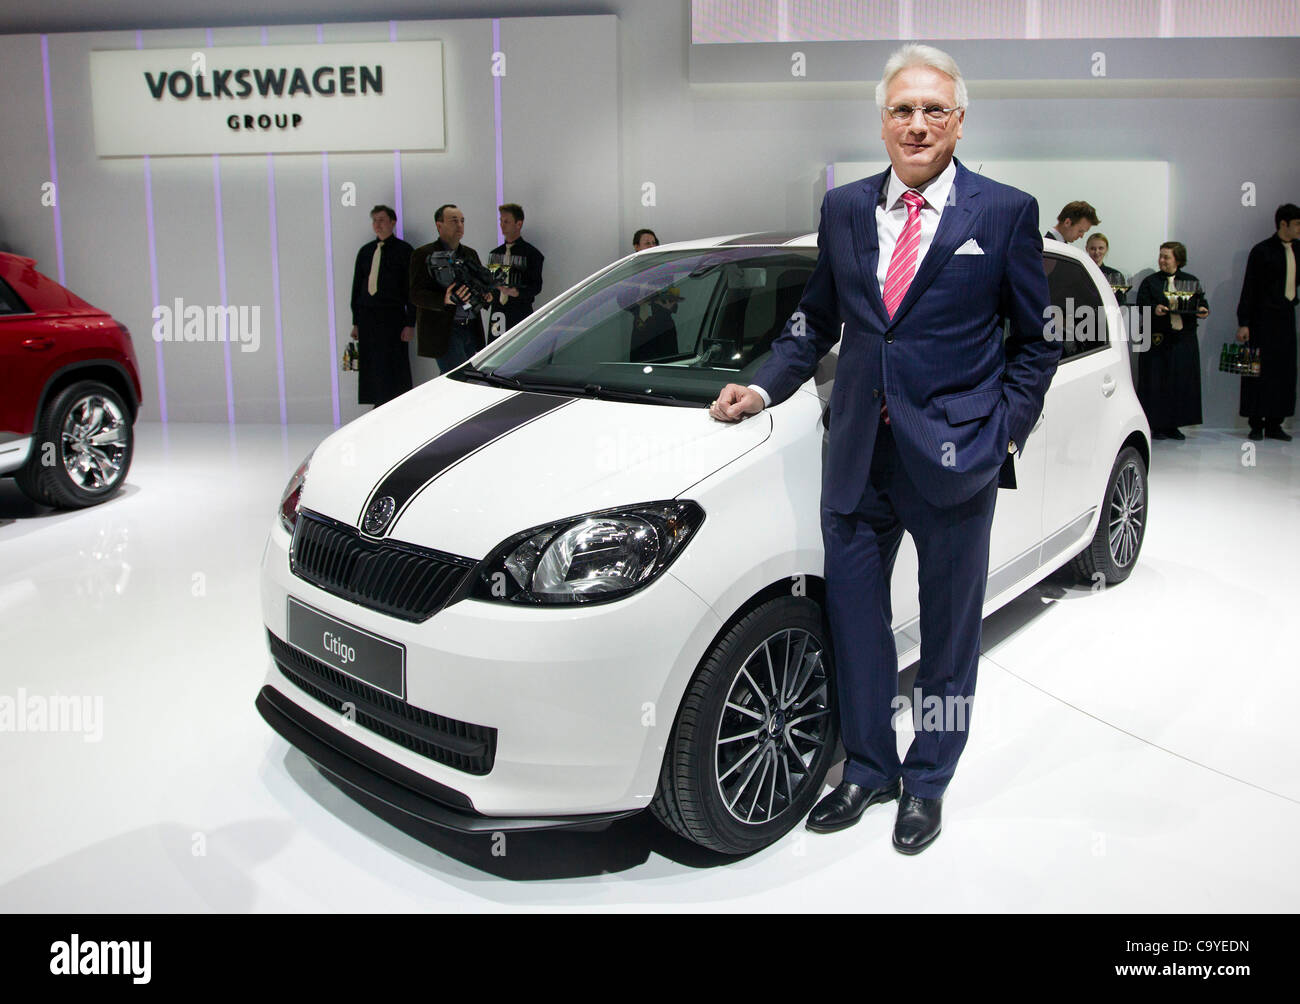 Skoda Auto CEO Winfried Vahland introduces new Skoda Citigo with five doors during Volkswagen Group evening at The - Stock Image